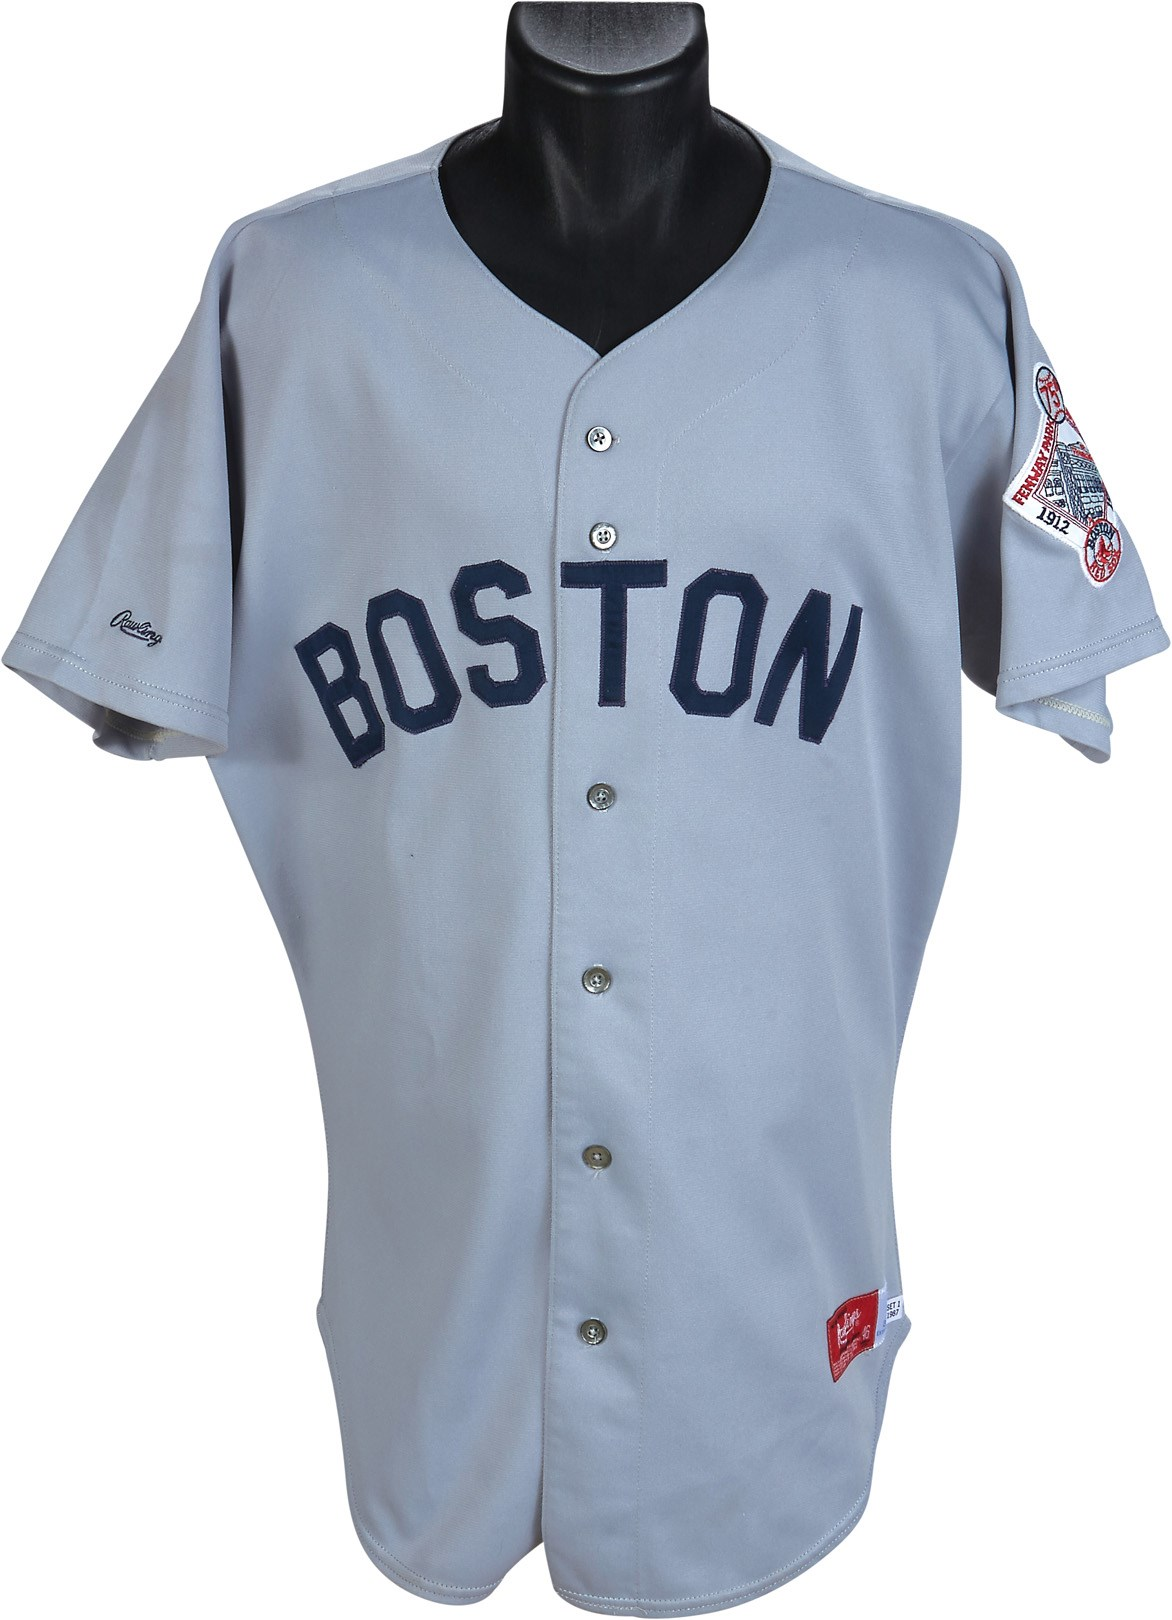 Boston Sports - Leland's Classic